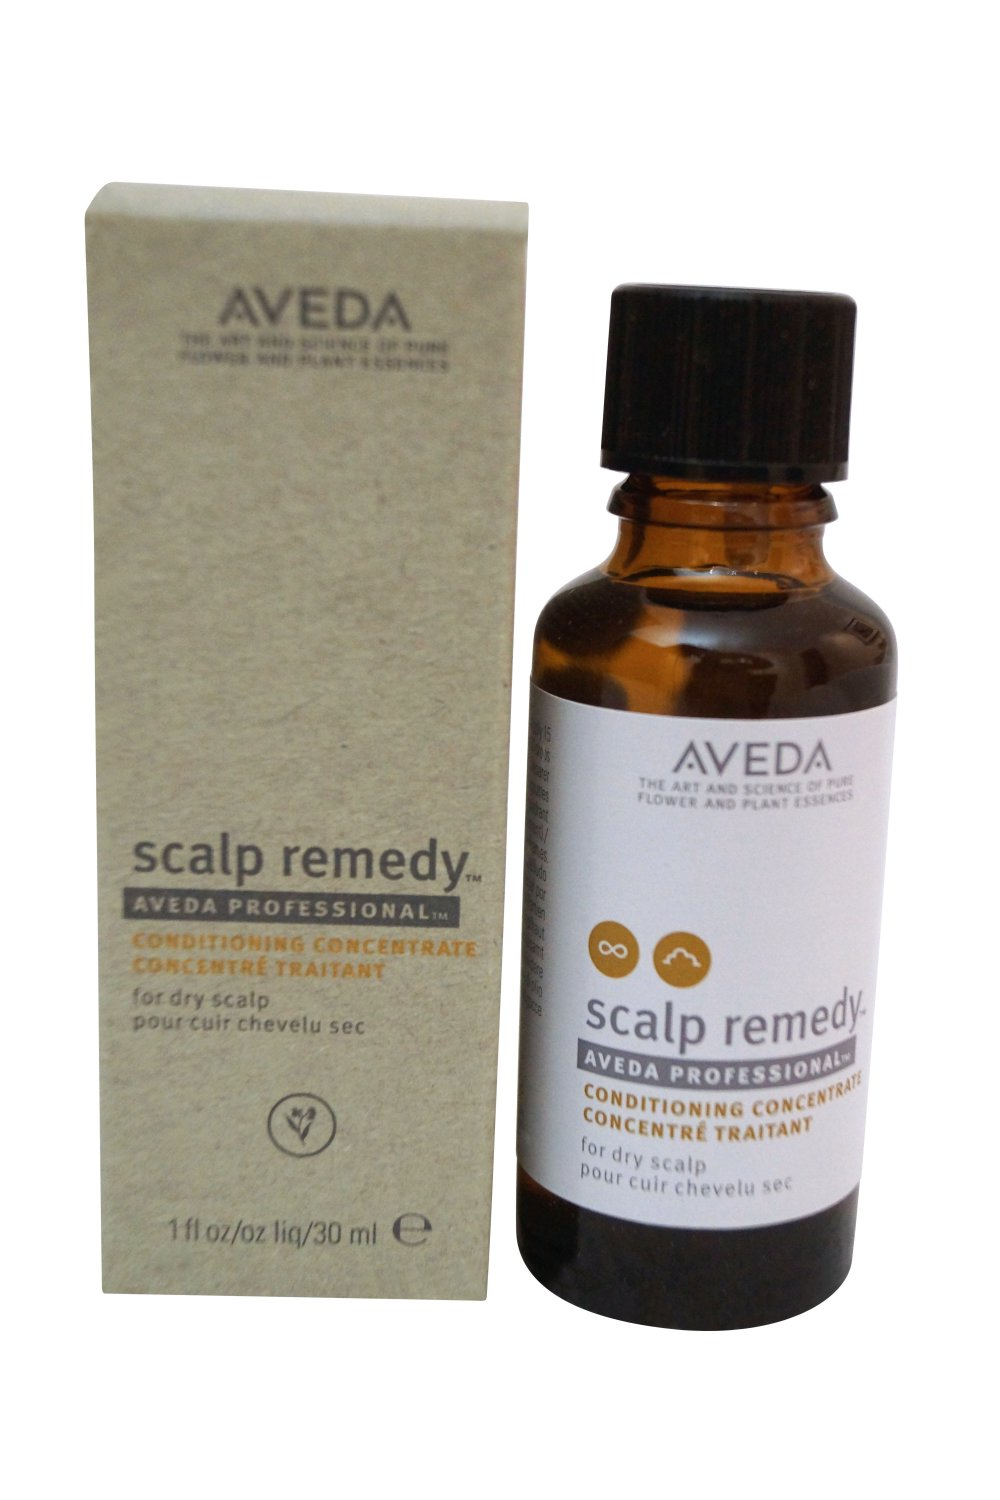 Aveda Scalp Remedy Conditioning Concentrate for Dry Scalp 1 oz